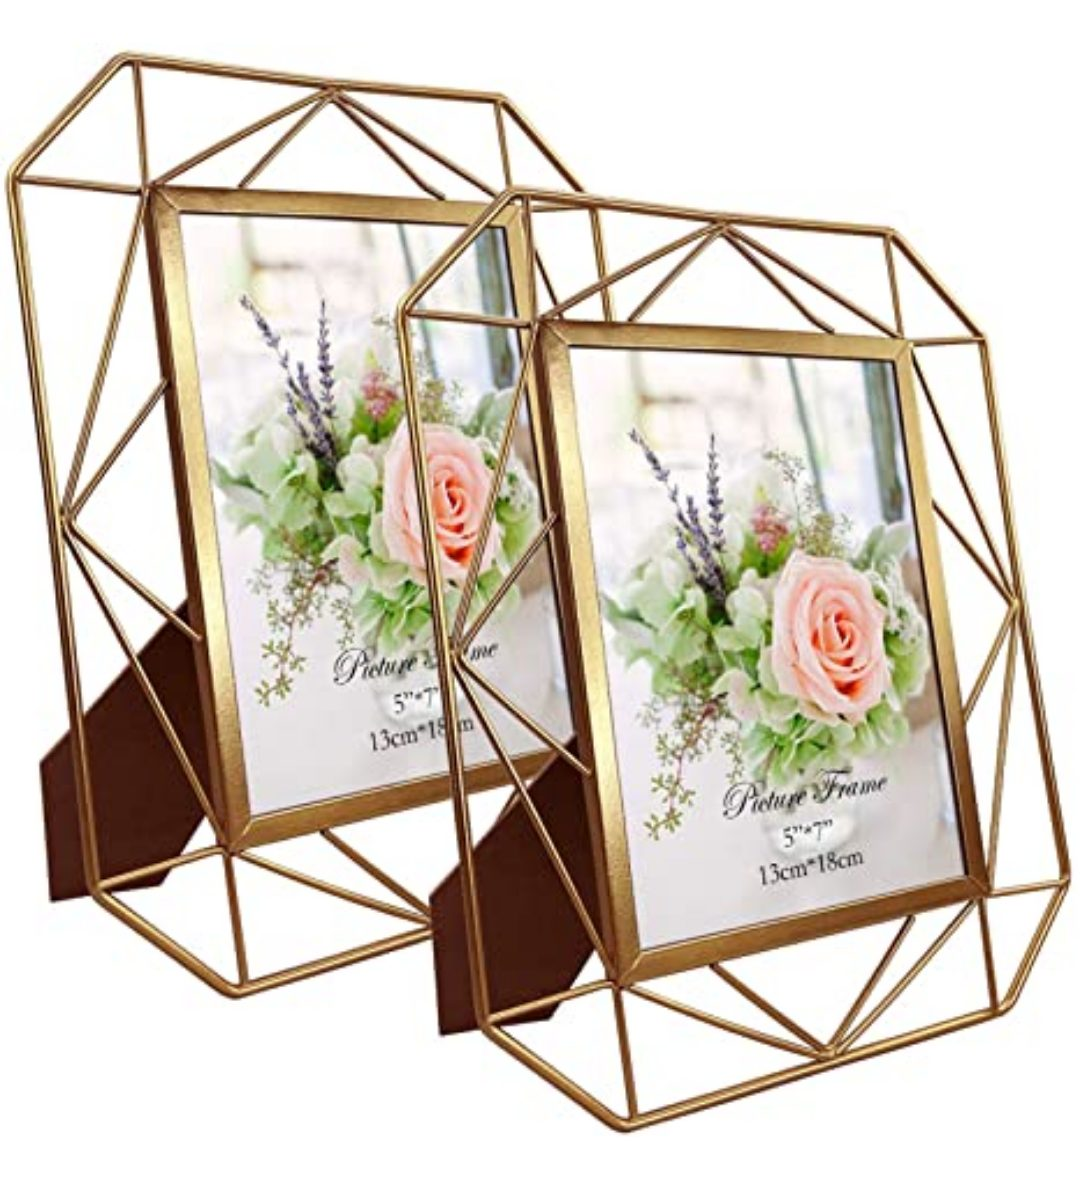 affordable photo frame for mother's day